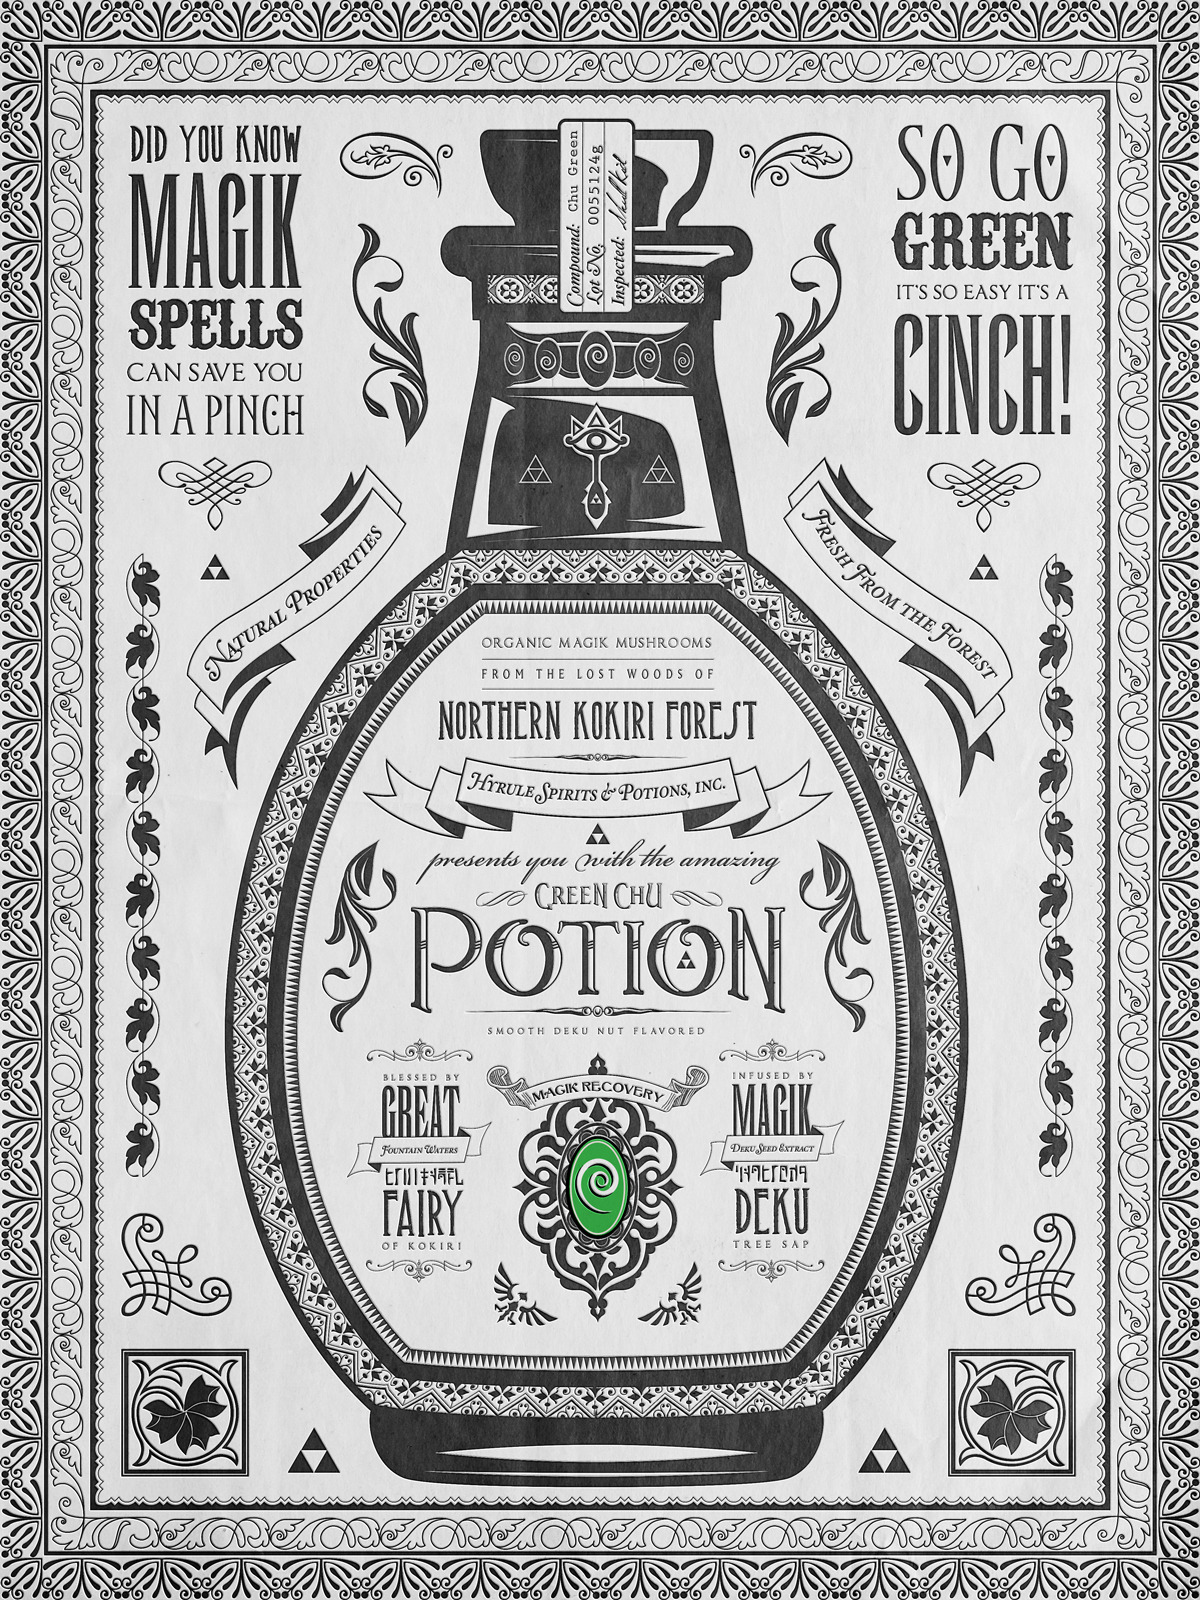 Legend of Zelda Vintage Green Chu Potion Advertisement Poster.Part 2 of 3 Potions Series. Highest quality 16x20 gliceè archival matte prints available at my etsy art shop! ©2013 Barrett Biggers, the People's Multimedia Artist.